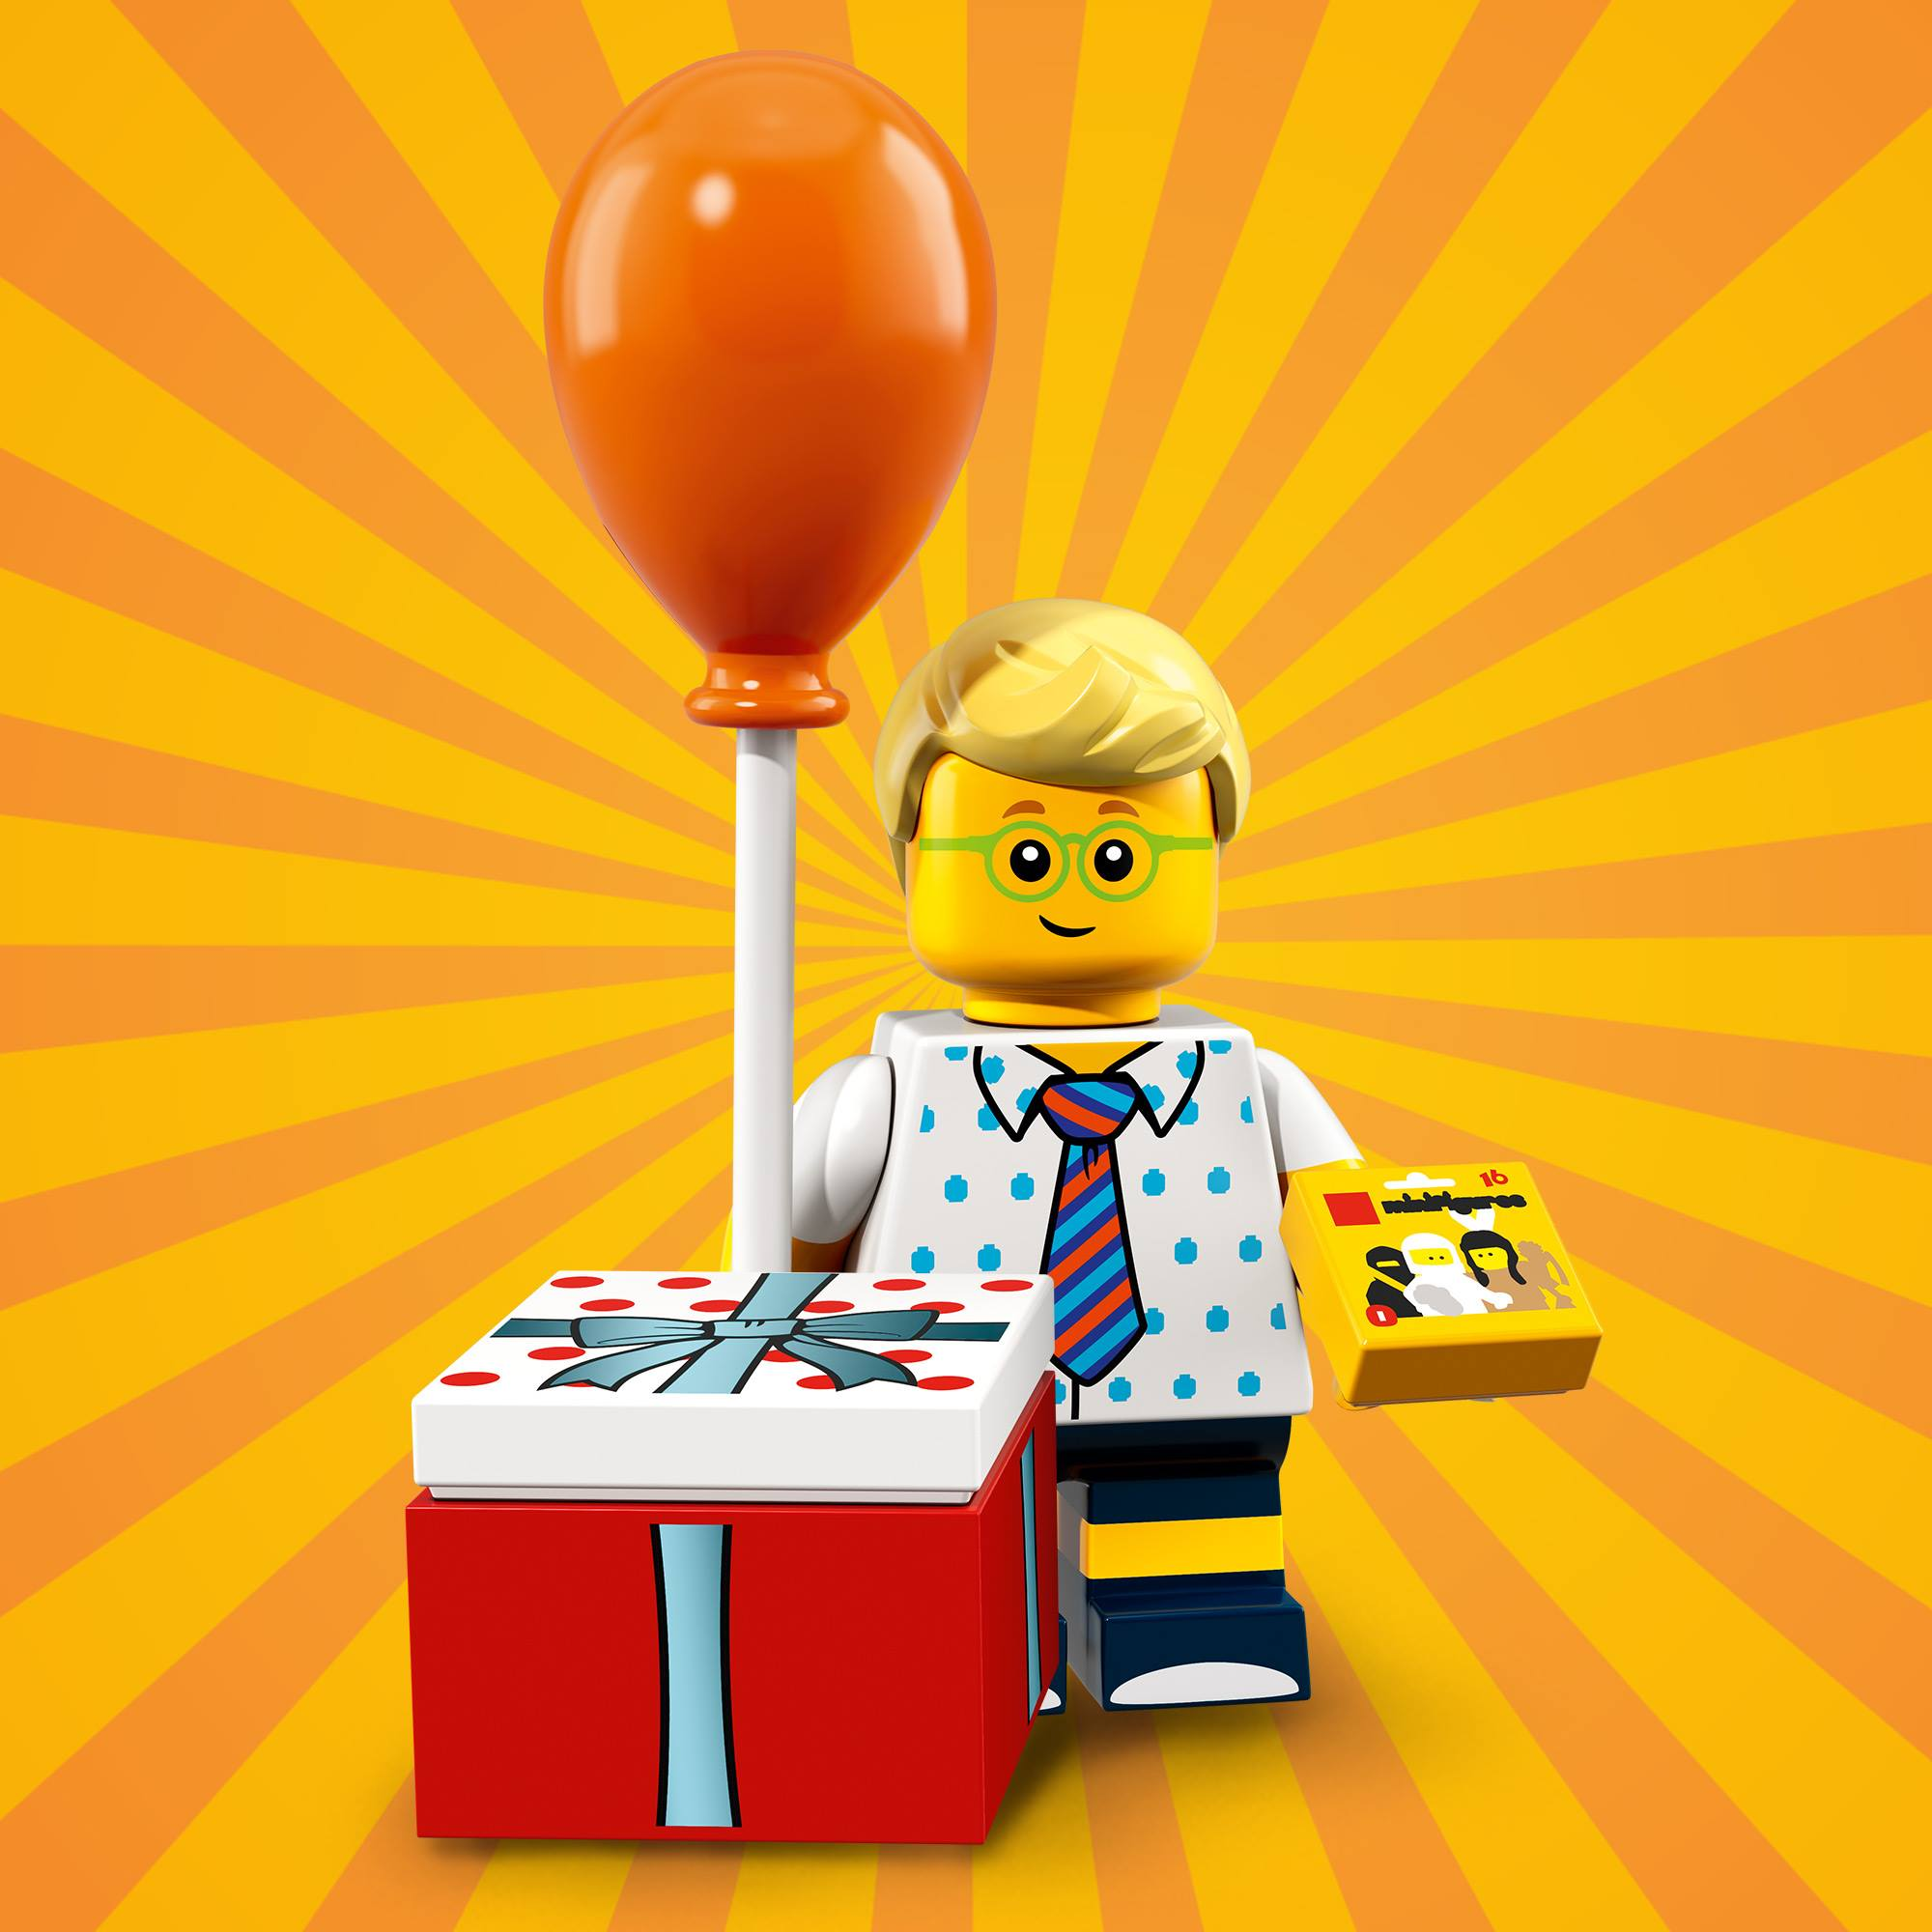 Official Images Of LEGO Minifigures Series 18